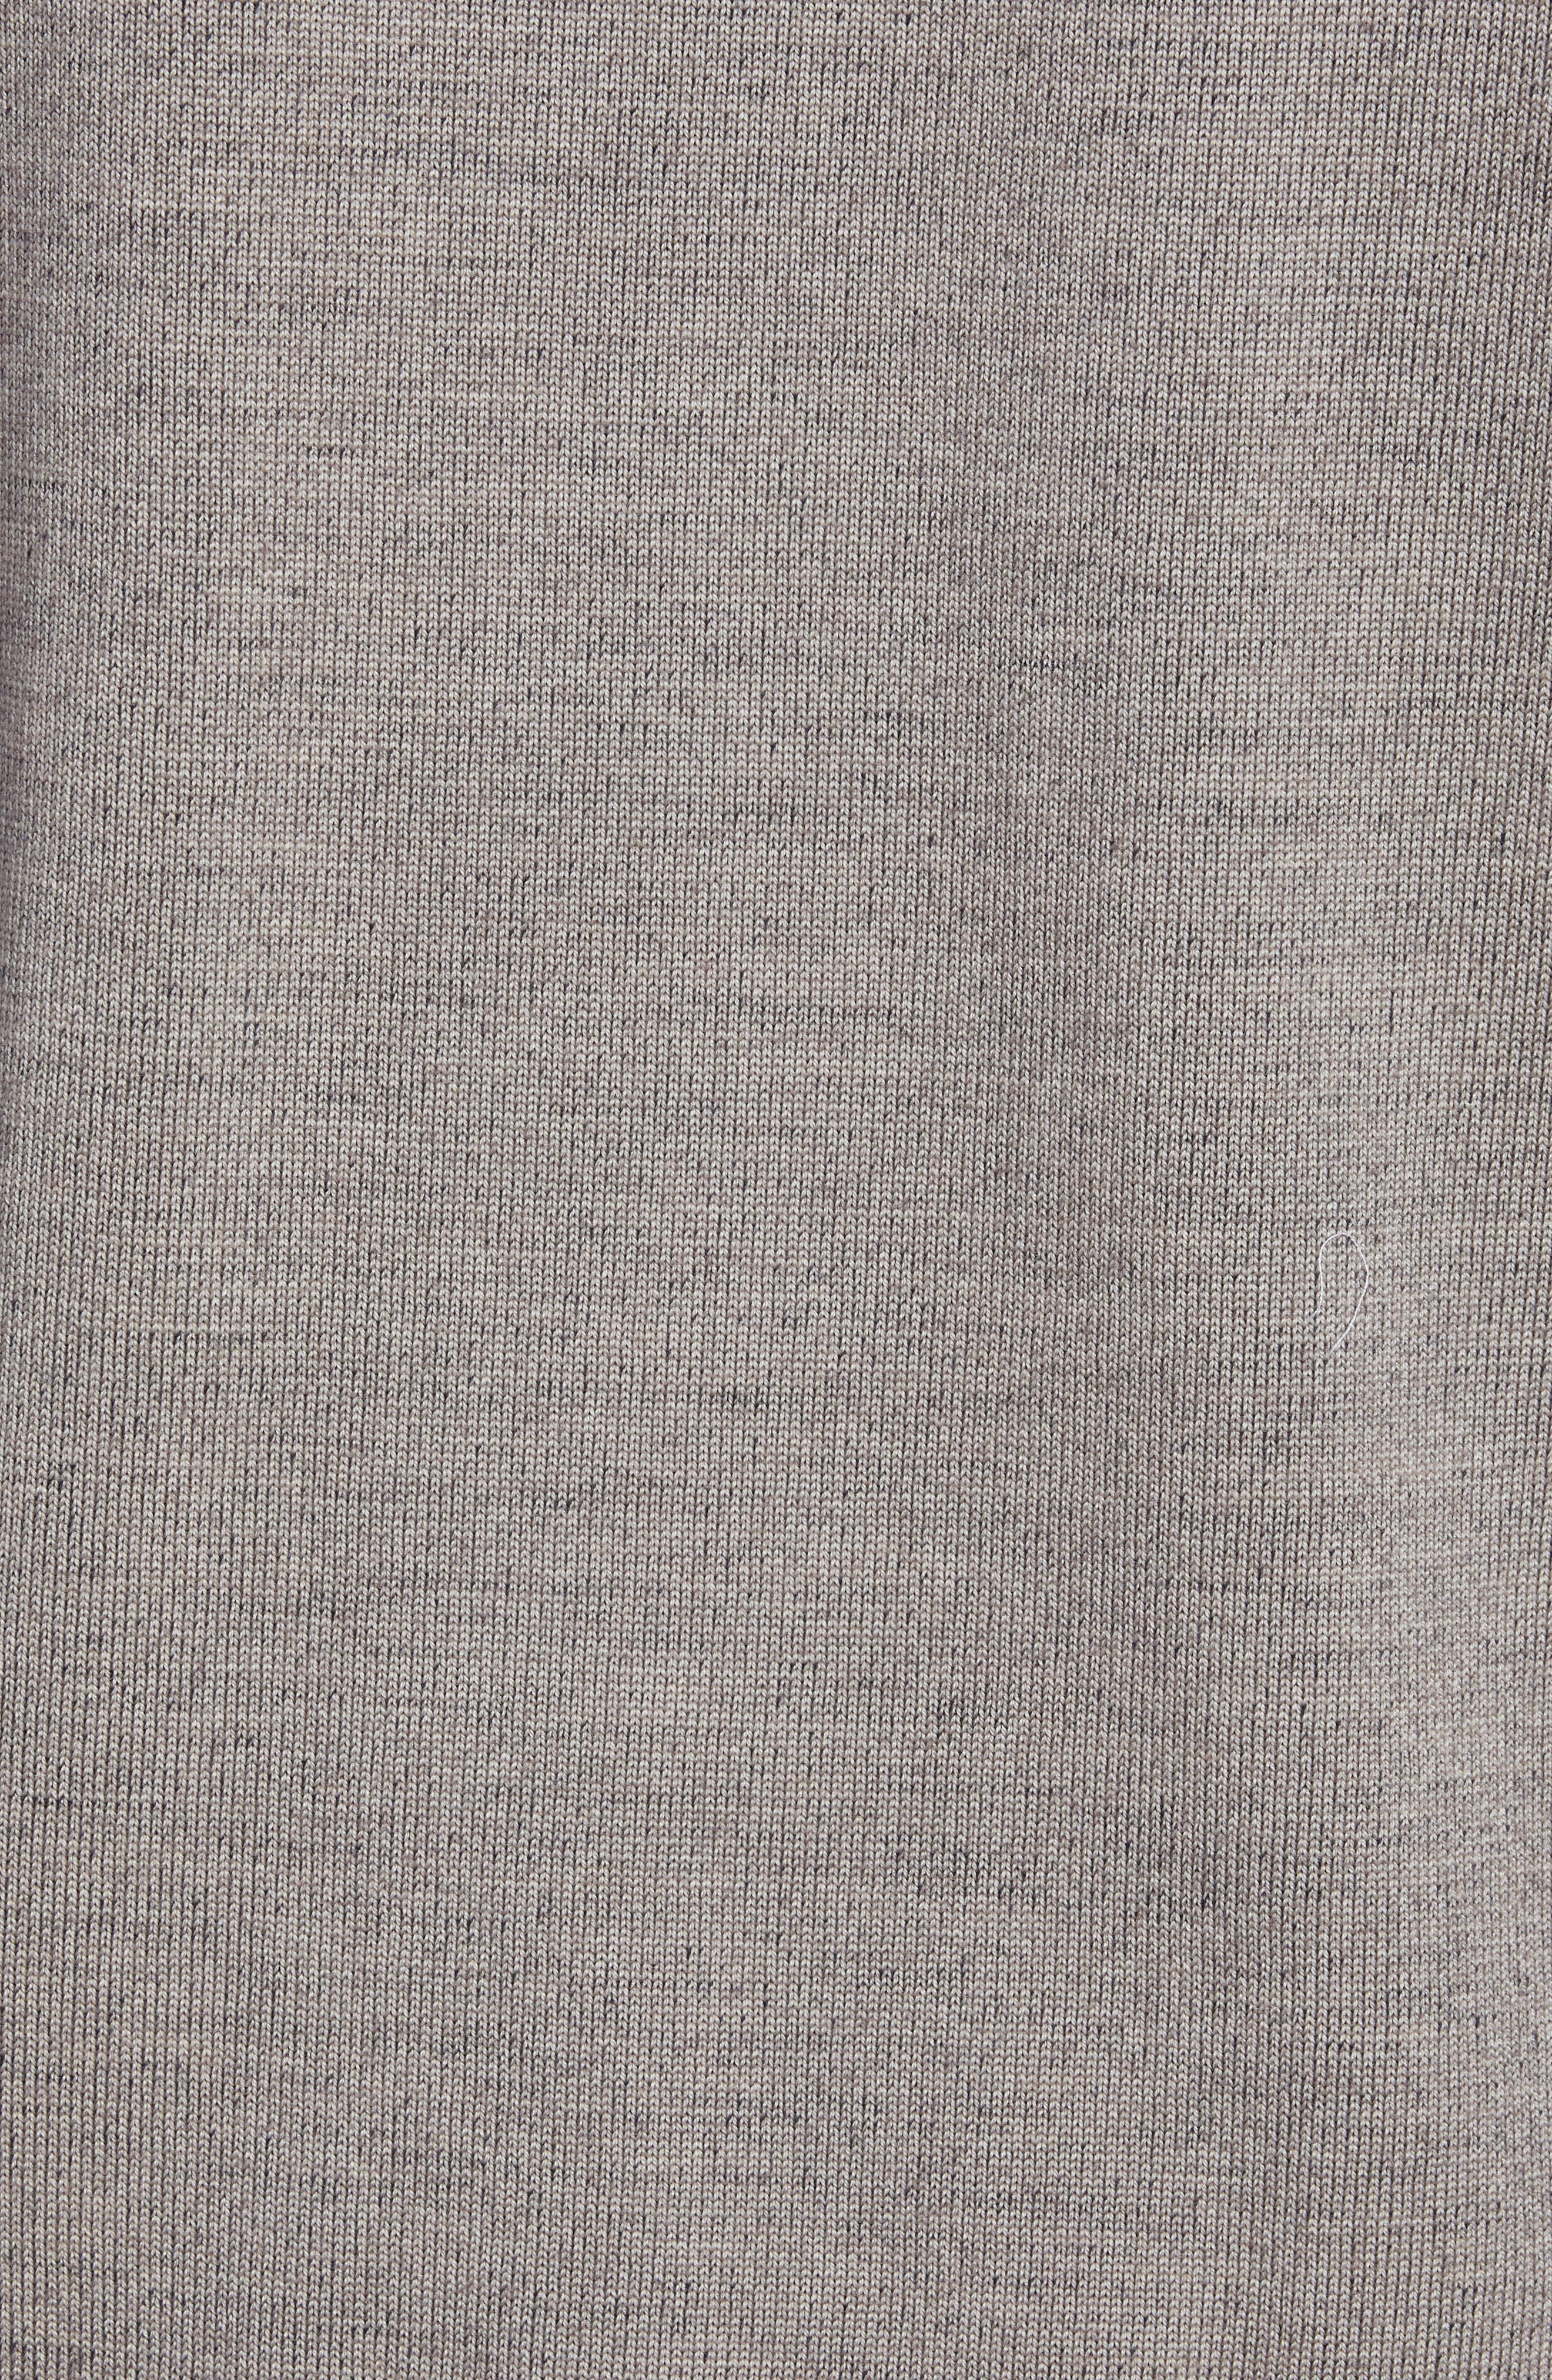 Wool Blend Sweater,                             Alternate thumbnail 5, color,                             TAUPE